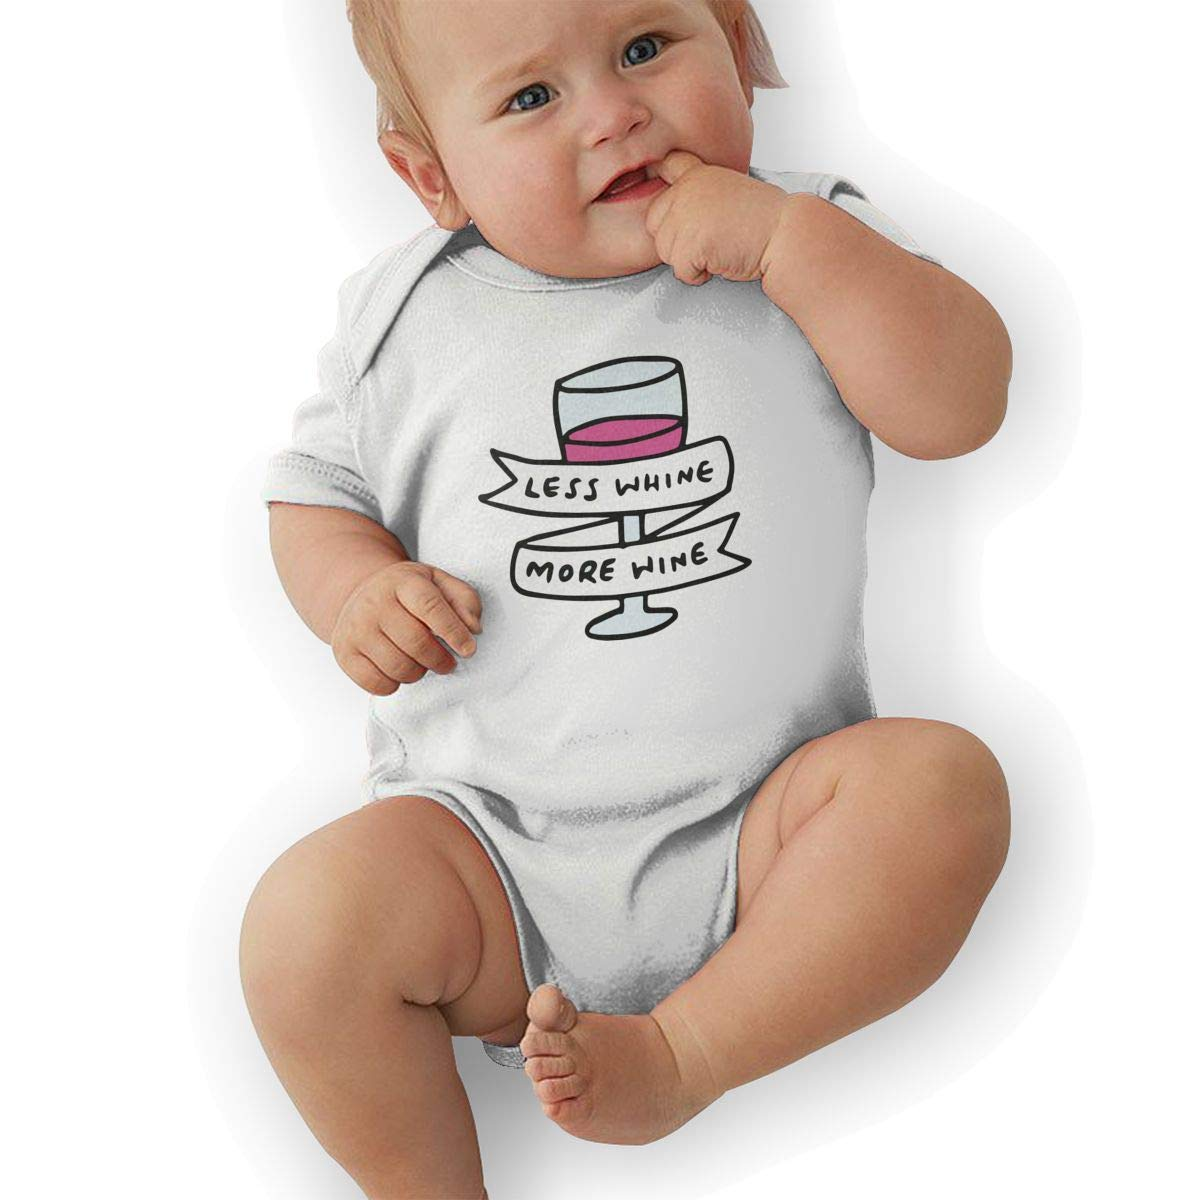 Mri-le2 Newborn Baby Short Sleeve Organic Bodysuit Less Whine More Wine 2 Toddler Clothes